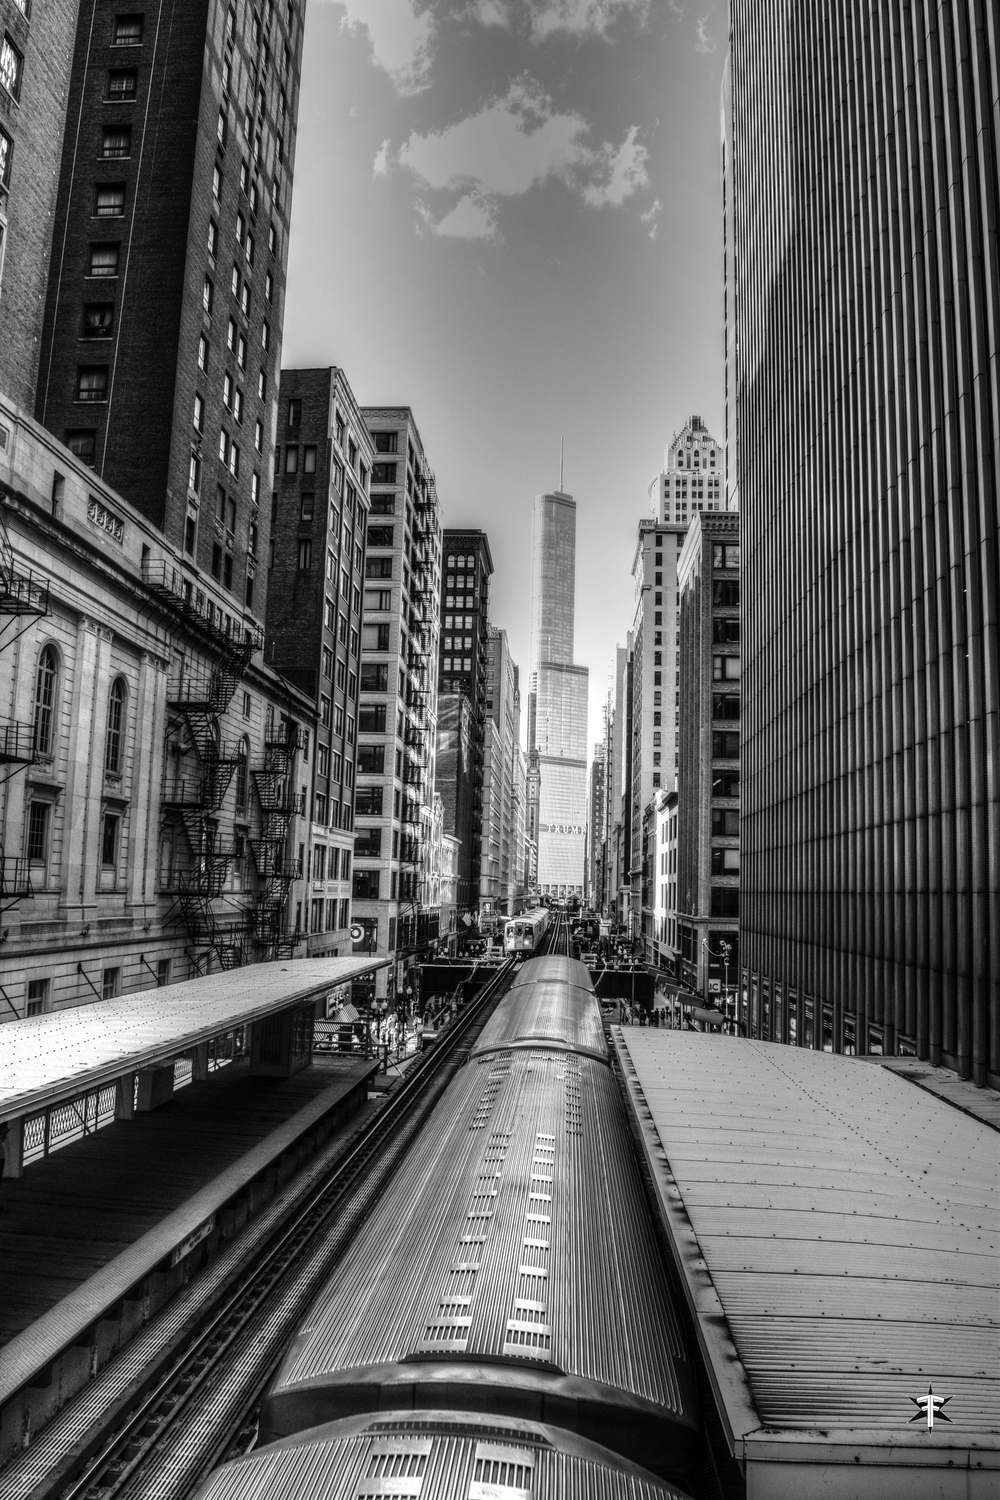 batch_cta chicago trump tower train contrast bnw.jpg